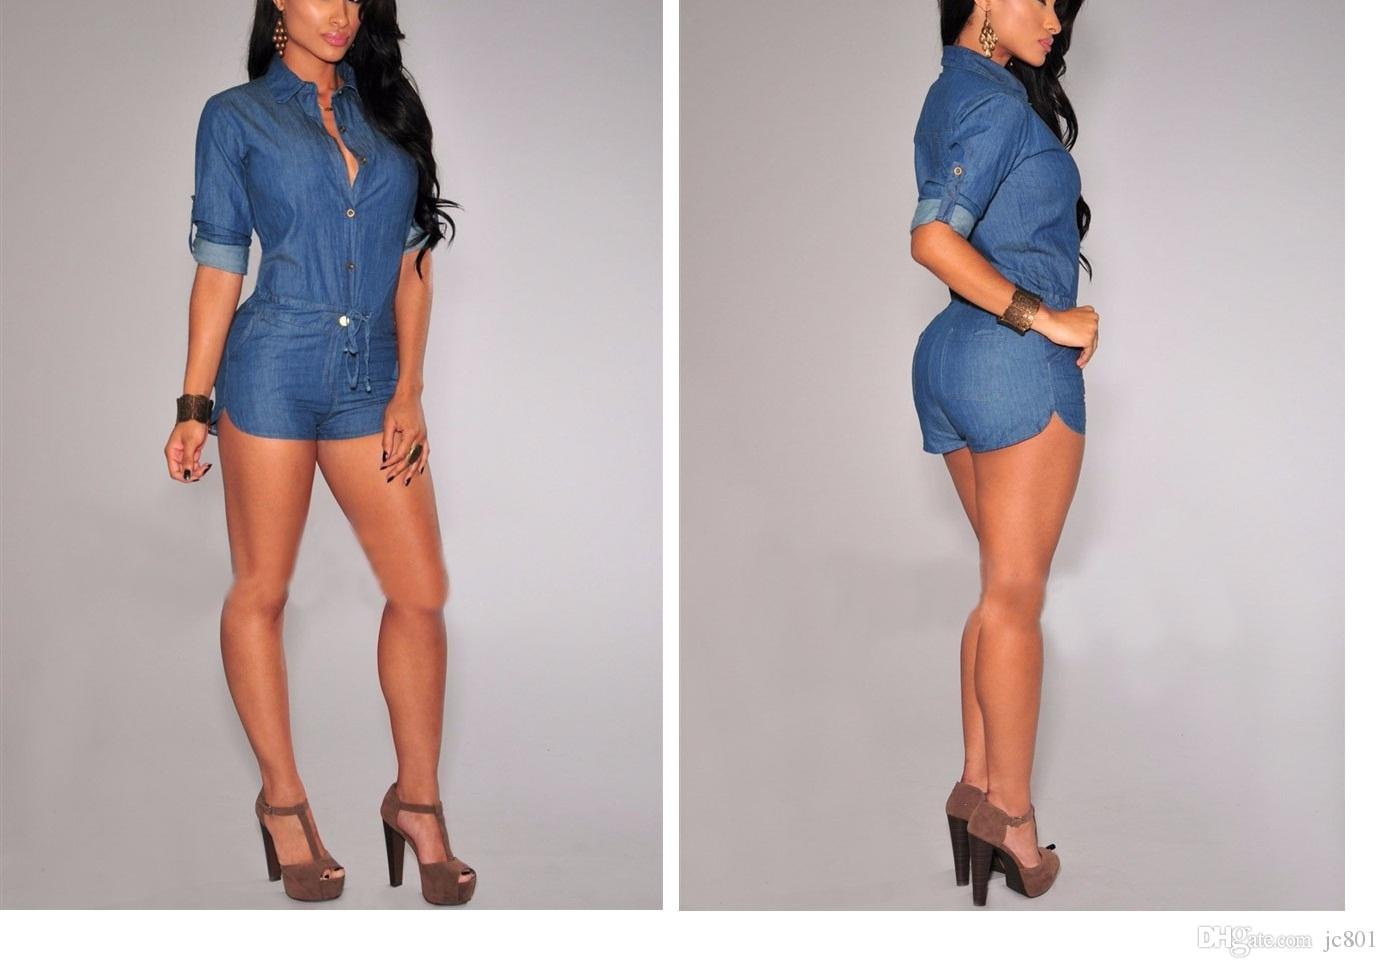 fc747cc027d85 2019 Plus Size Sexy Women Half Sleeve High Waist Denim Slim Mini Jeans  Jumpsuits Bodysuit Shorts Pants Romper Playsuit From Jc801, $55.49 |  DHgate.Com